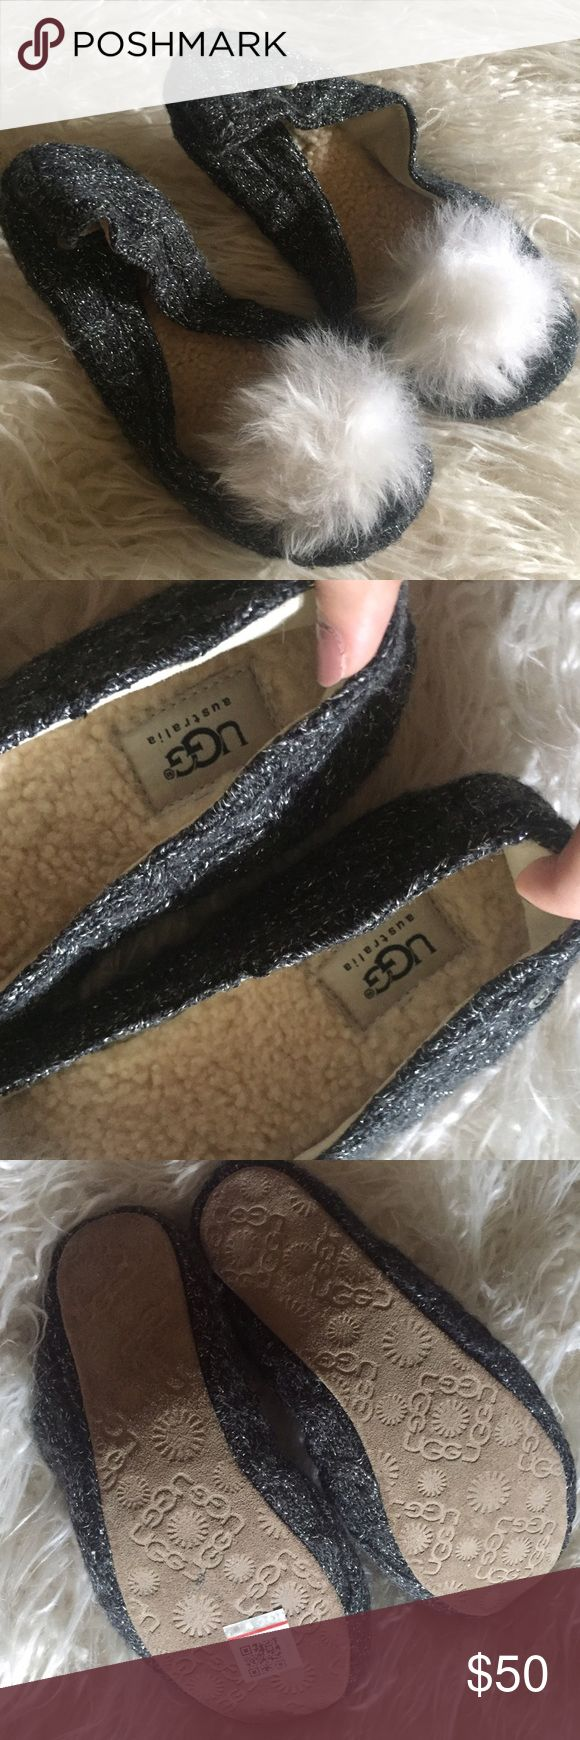 UGG Australia Andi Ballet Slippers UGG Andi Slippers brand new never worn! Can be worn inside as house slippers or even outside as ballet flats • made with genuine sheepskin & leather material • comes with original drawstring bag UGG Shoes